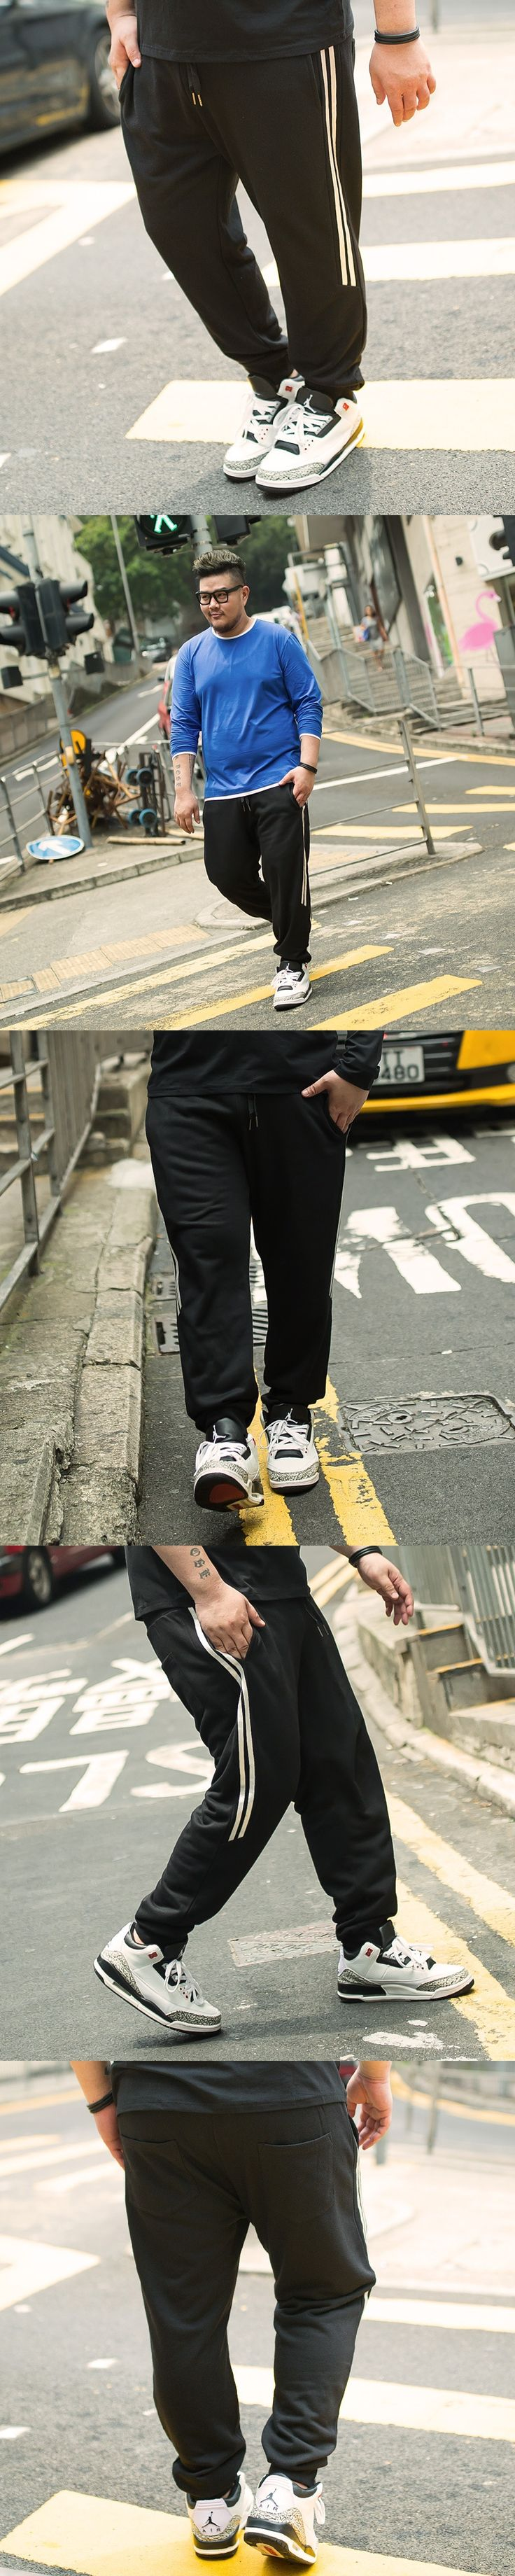 new big Size 48 For140KG Jogger Pants Sportswear Pants Mens Tracksuit Casual Pant Male Fitness Workout Pants Sweatpants Trousers